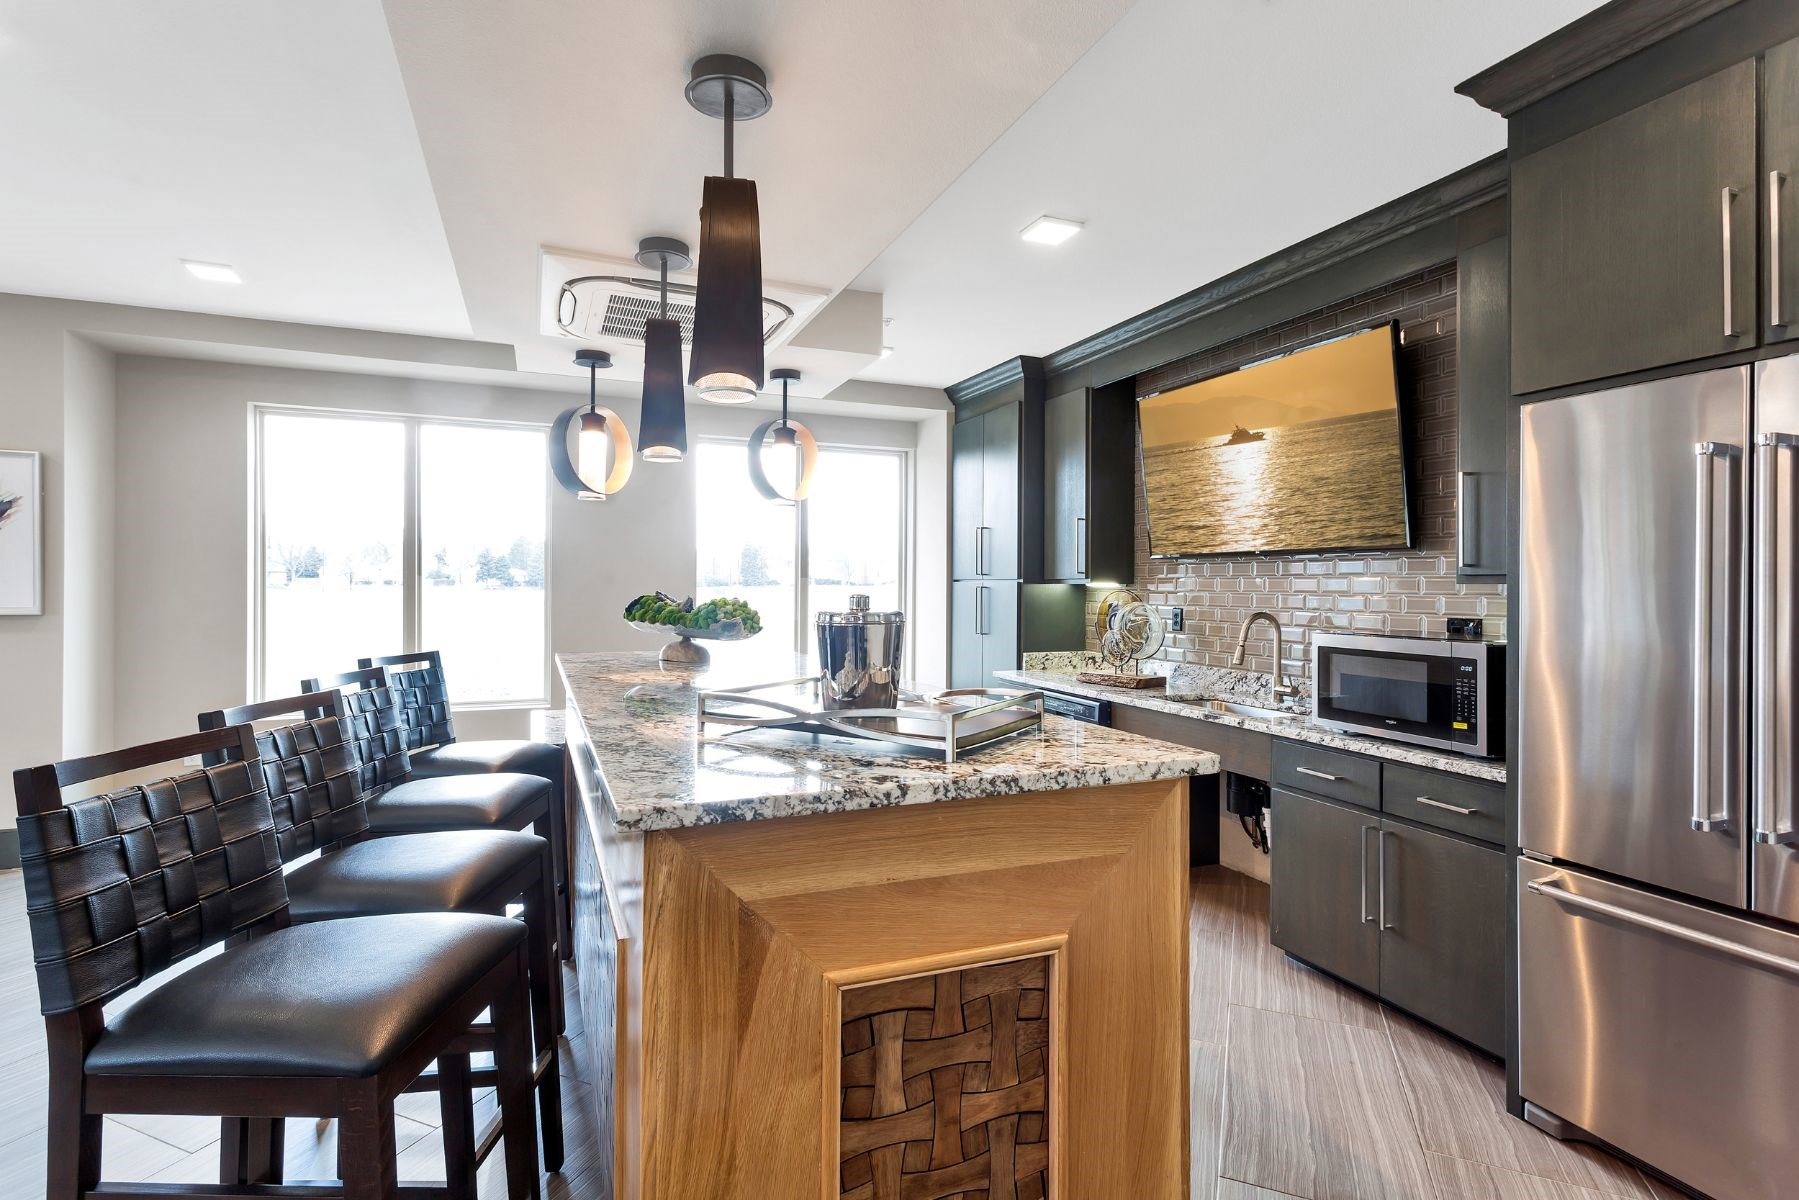 Westwood Green Apartments Clubhouse full demonstration kitchen with stainless appliances and bar height countertop